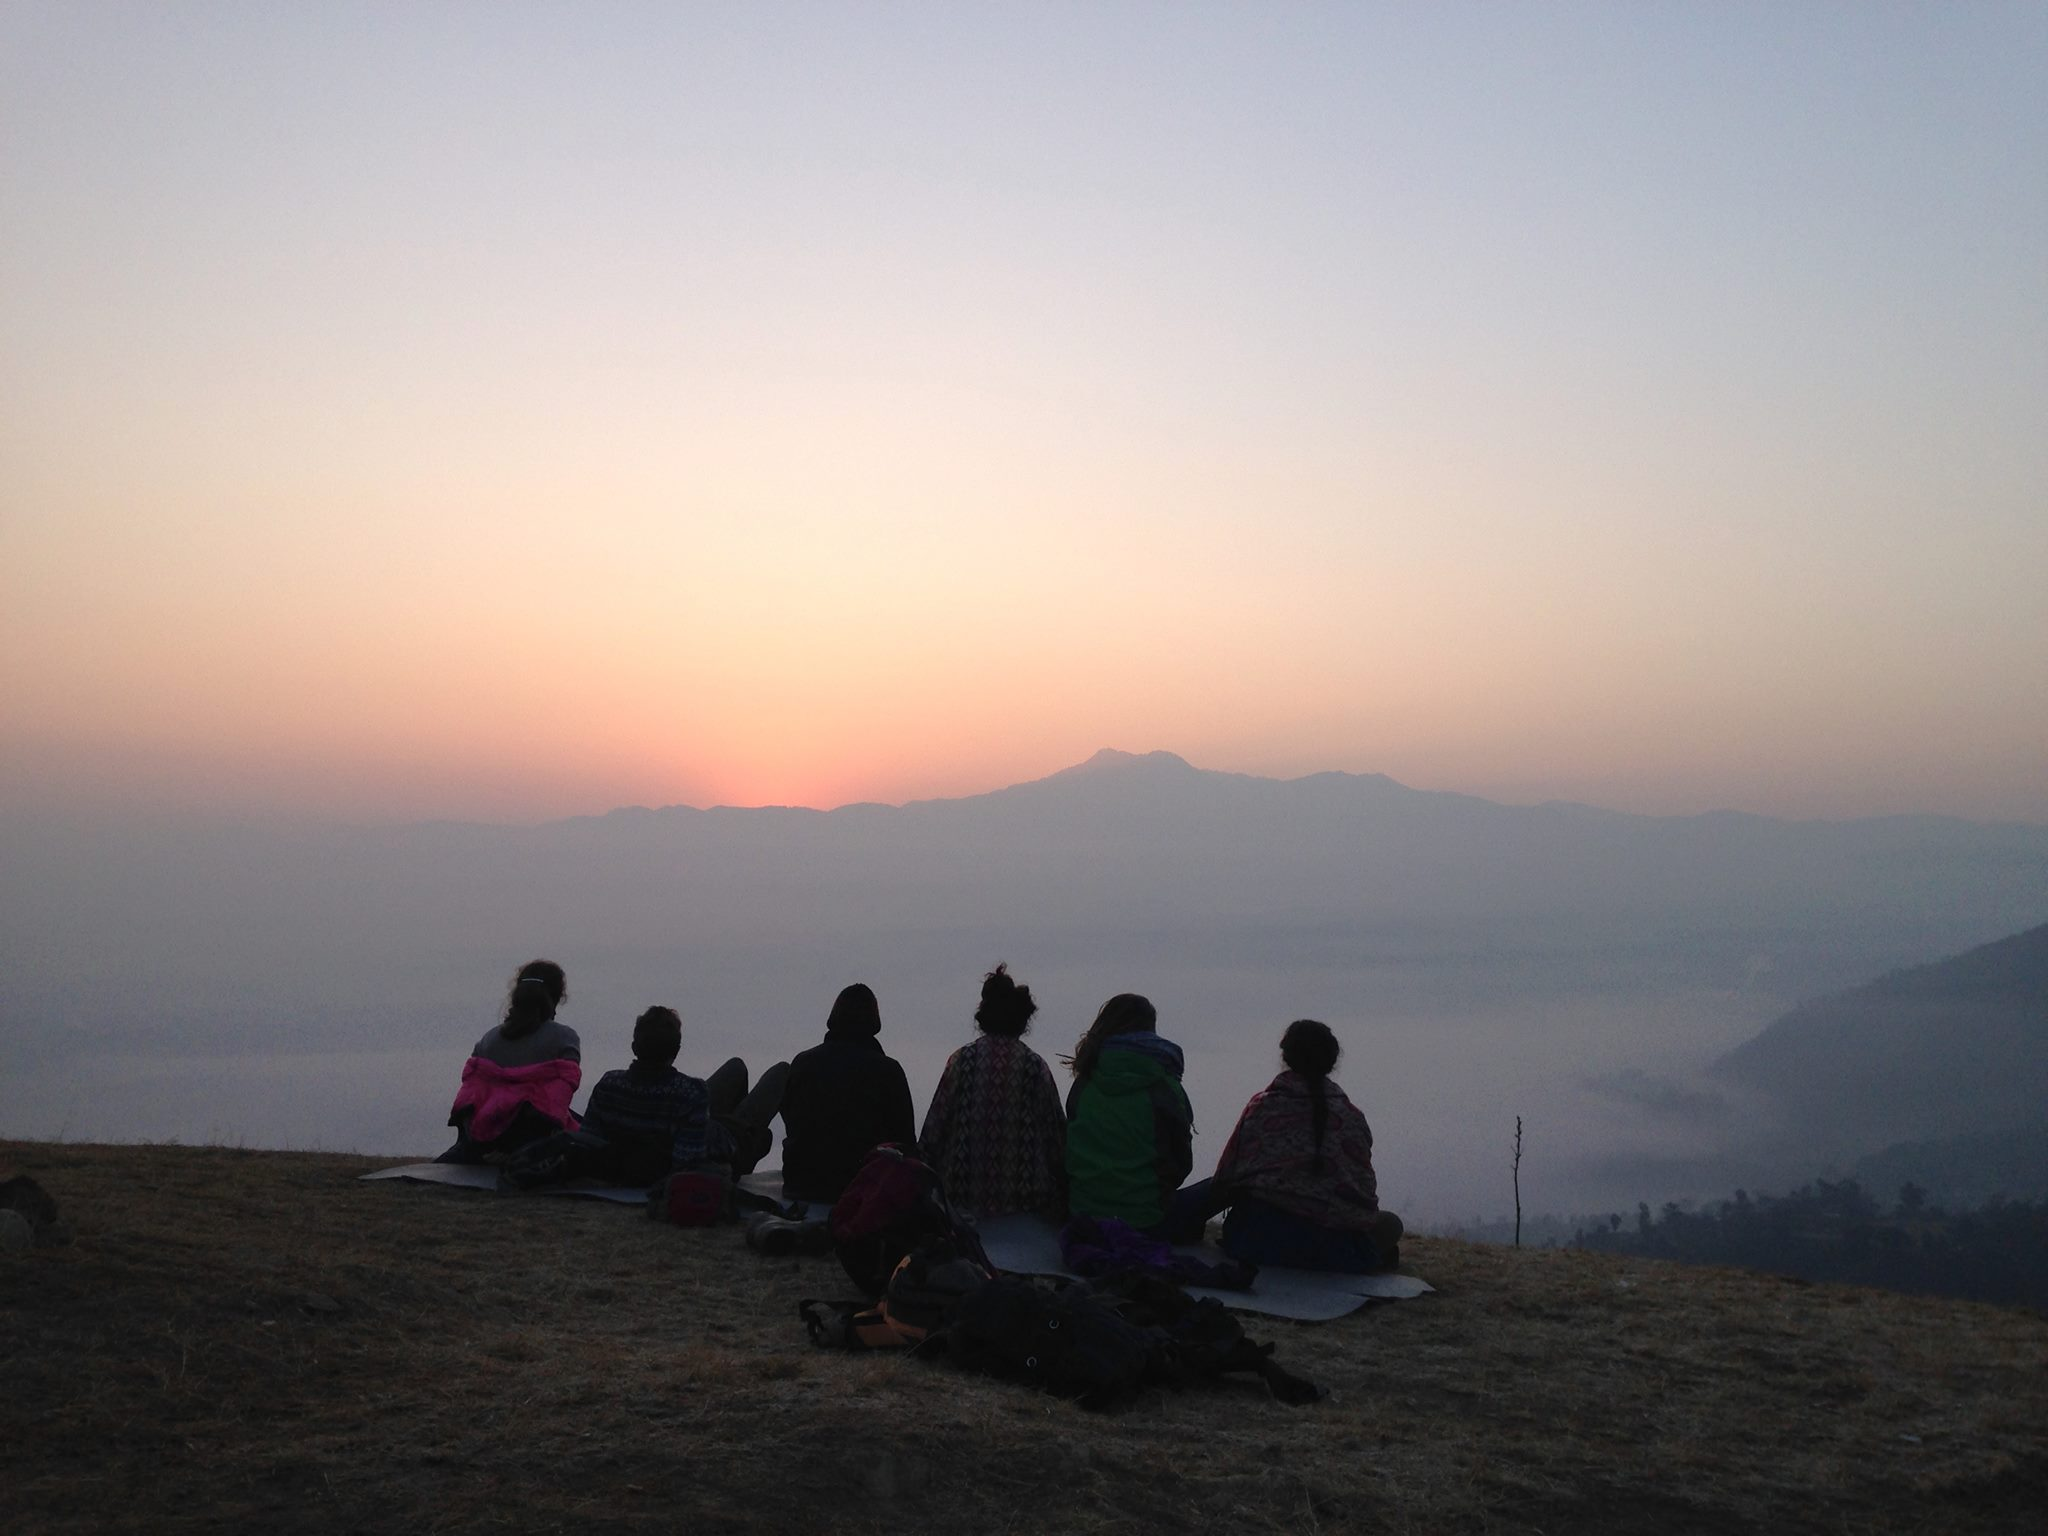 My first Nepalese sunrise with new friends.